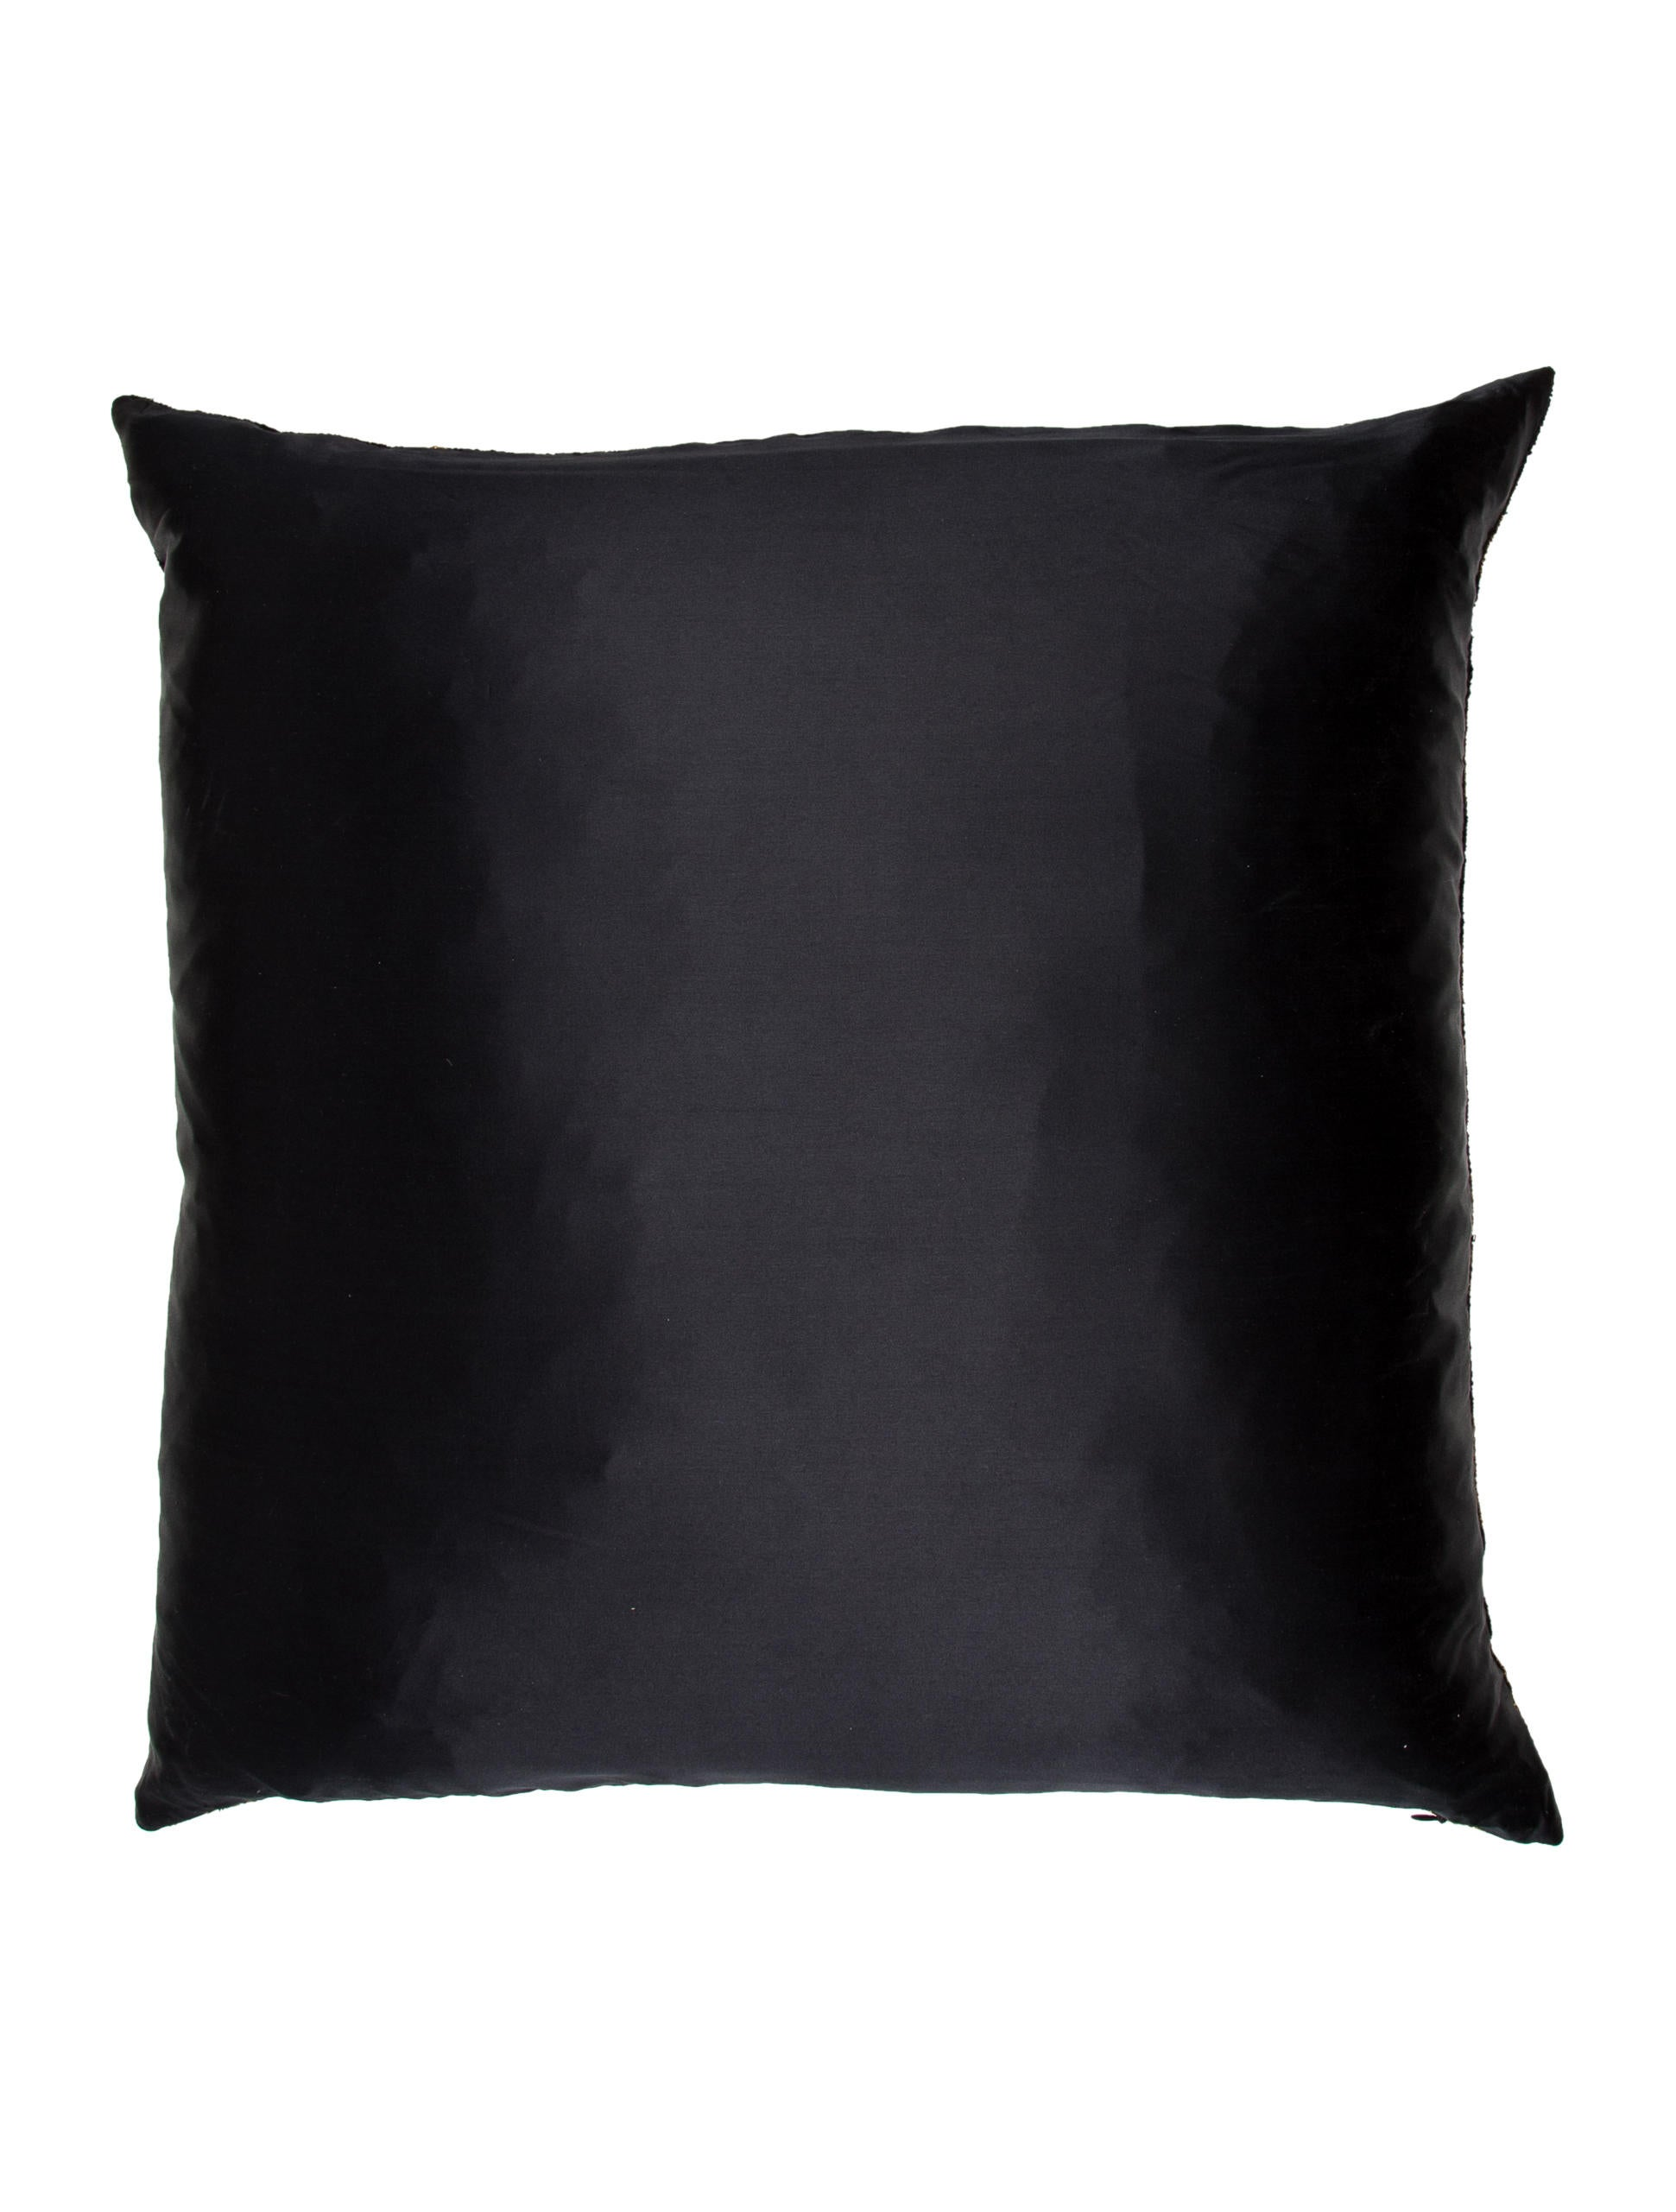 Ralph Lauren Zelda Throw Pillow - Bedding And Bath - WYG24179 The RealReal